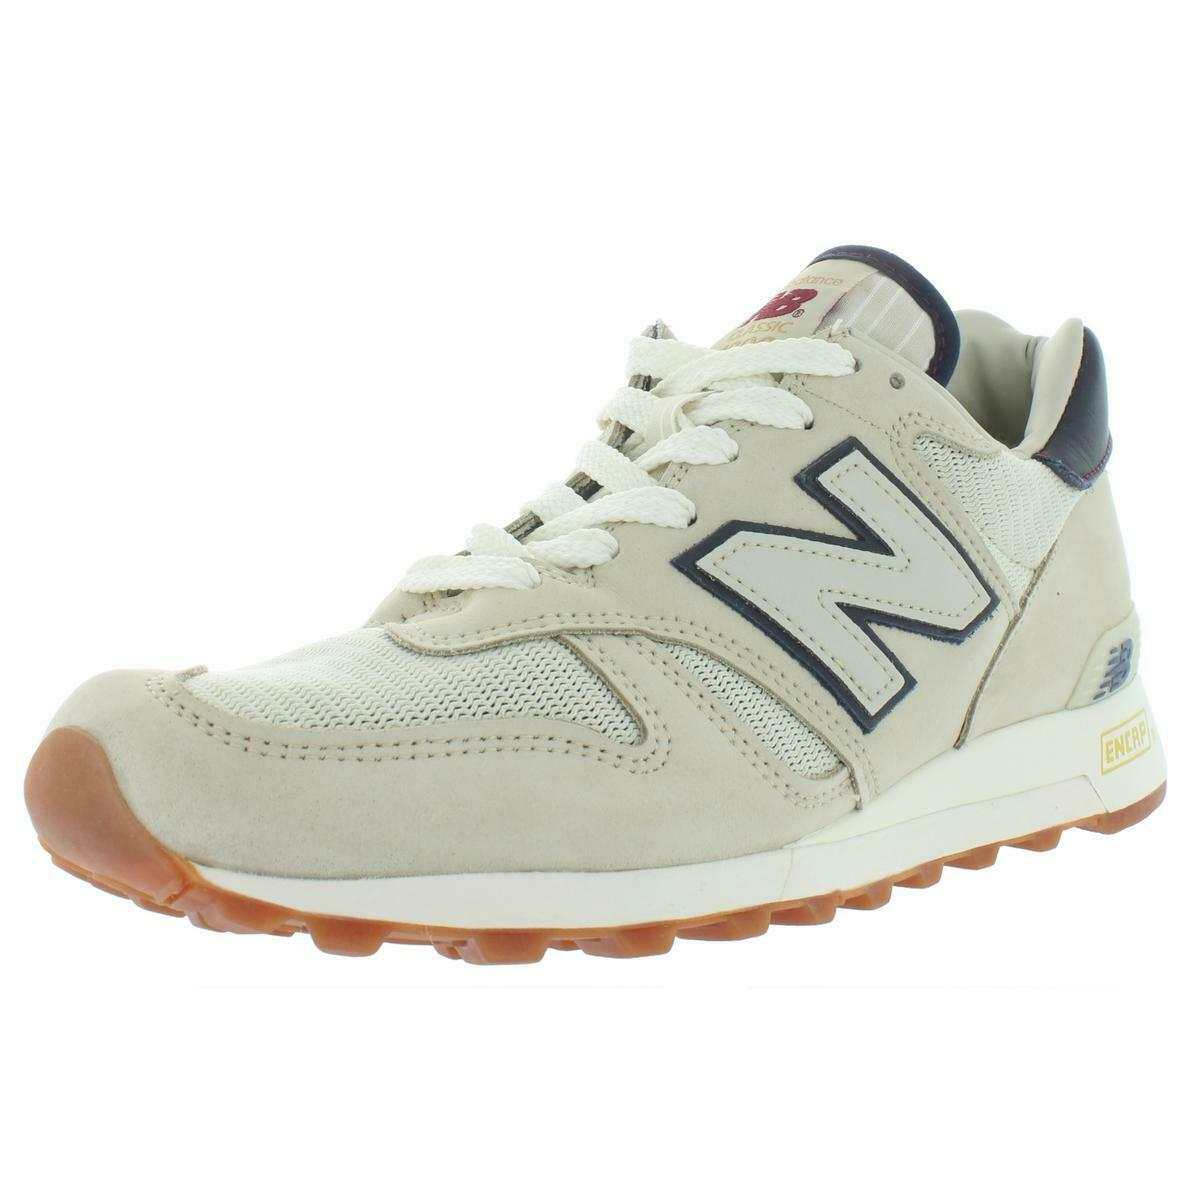 Para Hombre Beige Low Top New Balance Informal Tenis Zapatos 9 mediano (D) BHFO 9015